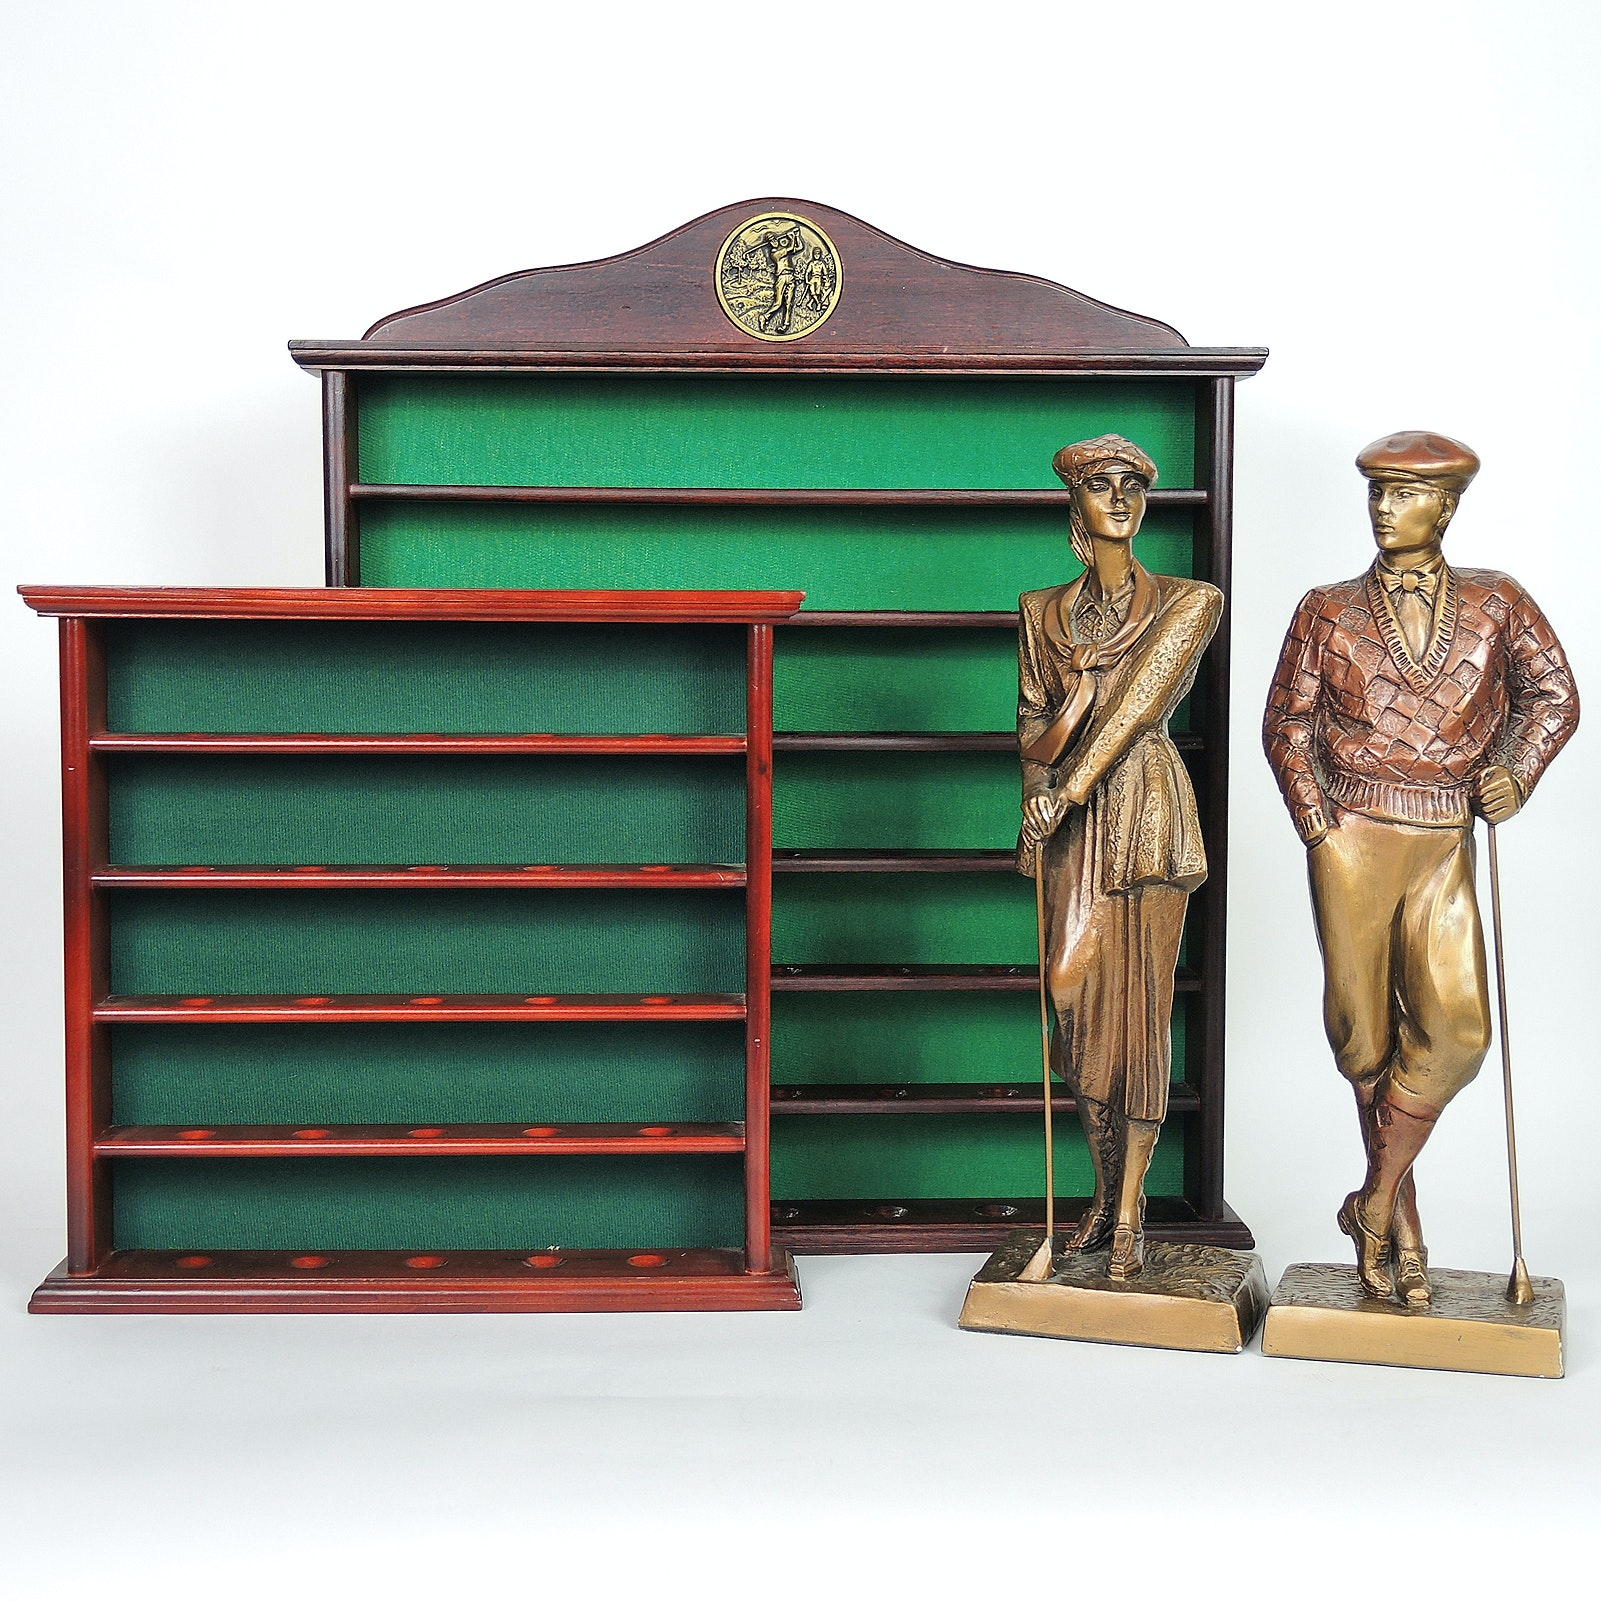 Wooden Golf Ball Display Shelves and Austin Productions Figurines